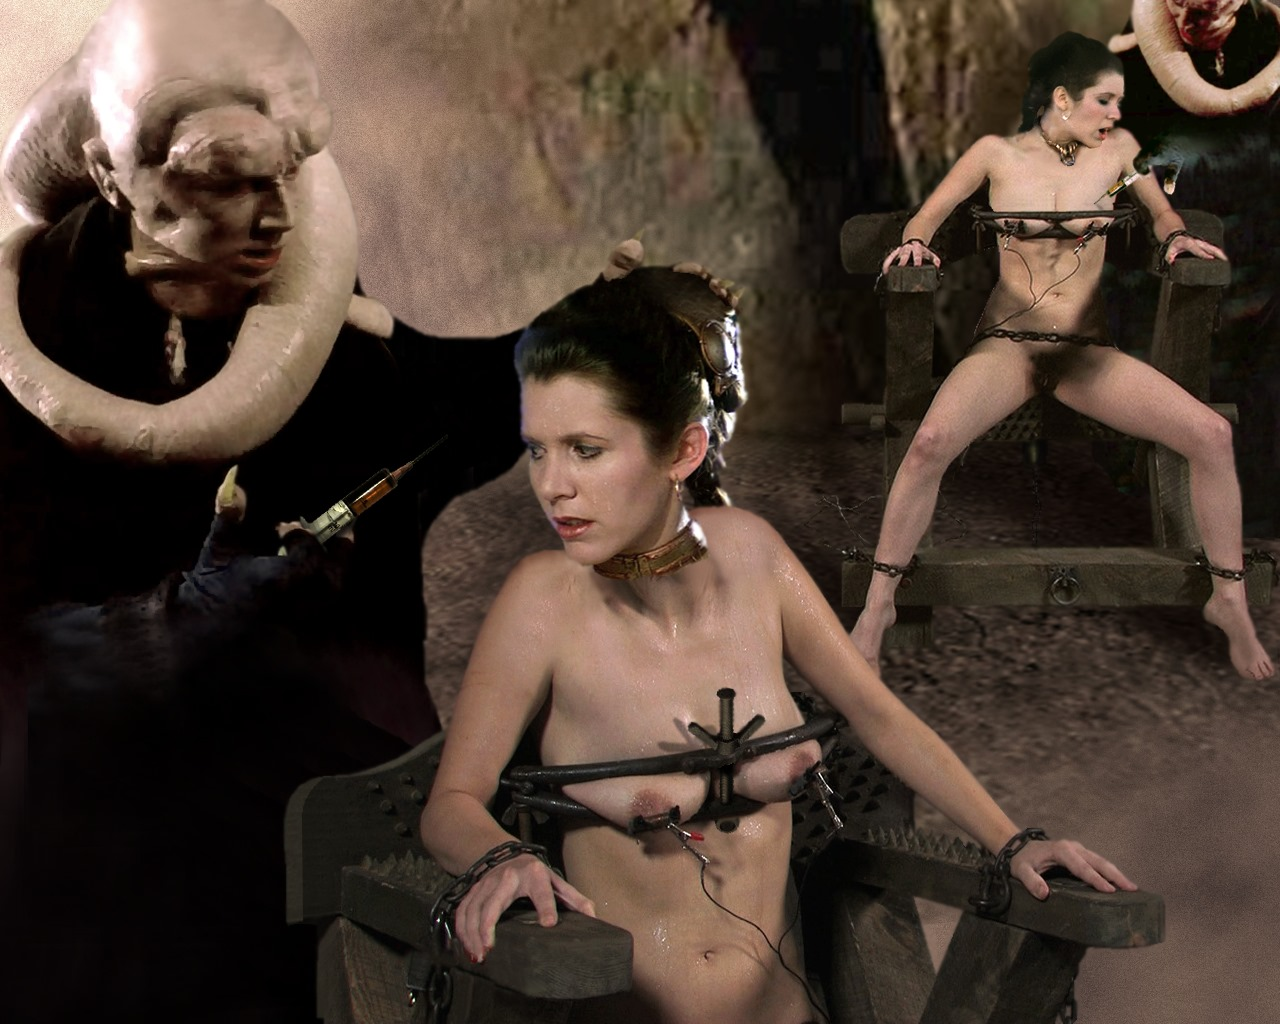 Bdsm starwars softcore scenes